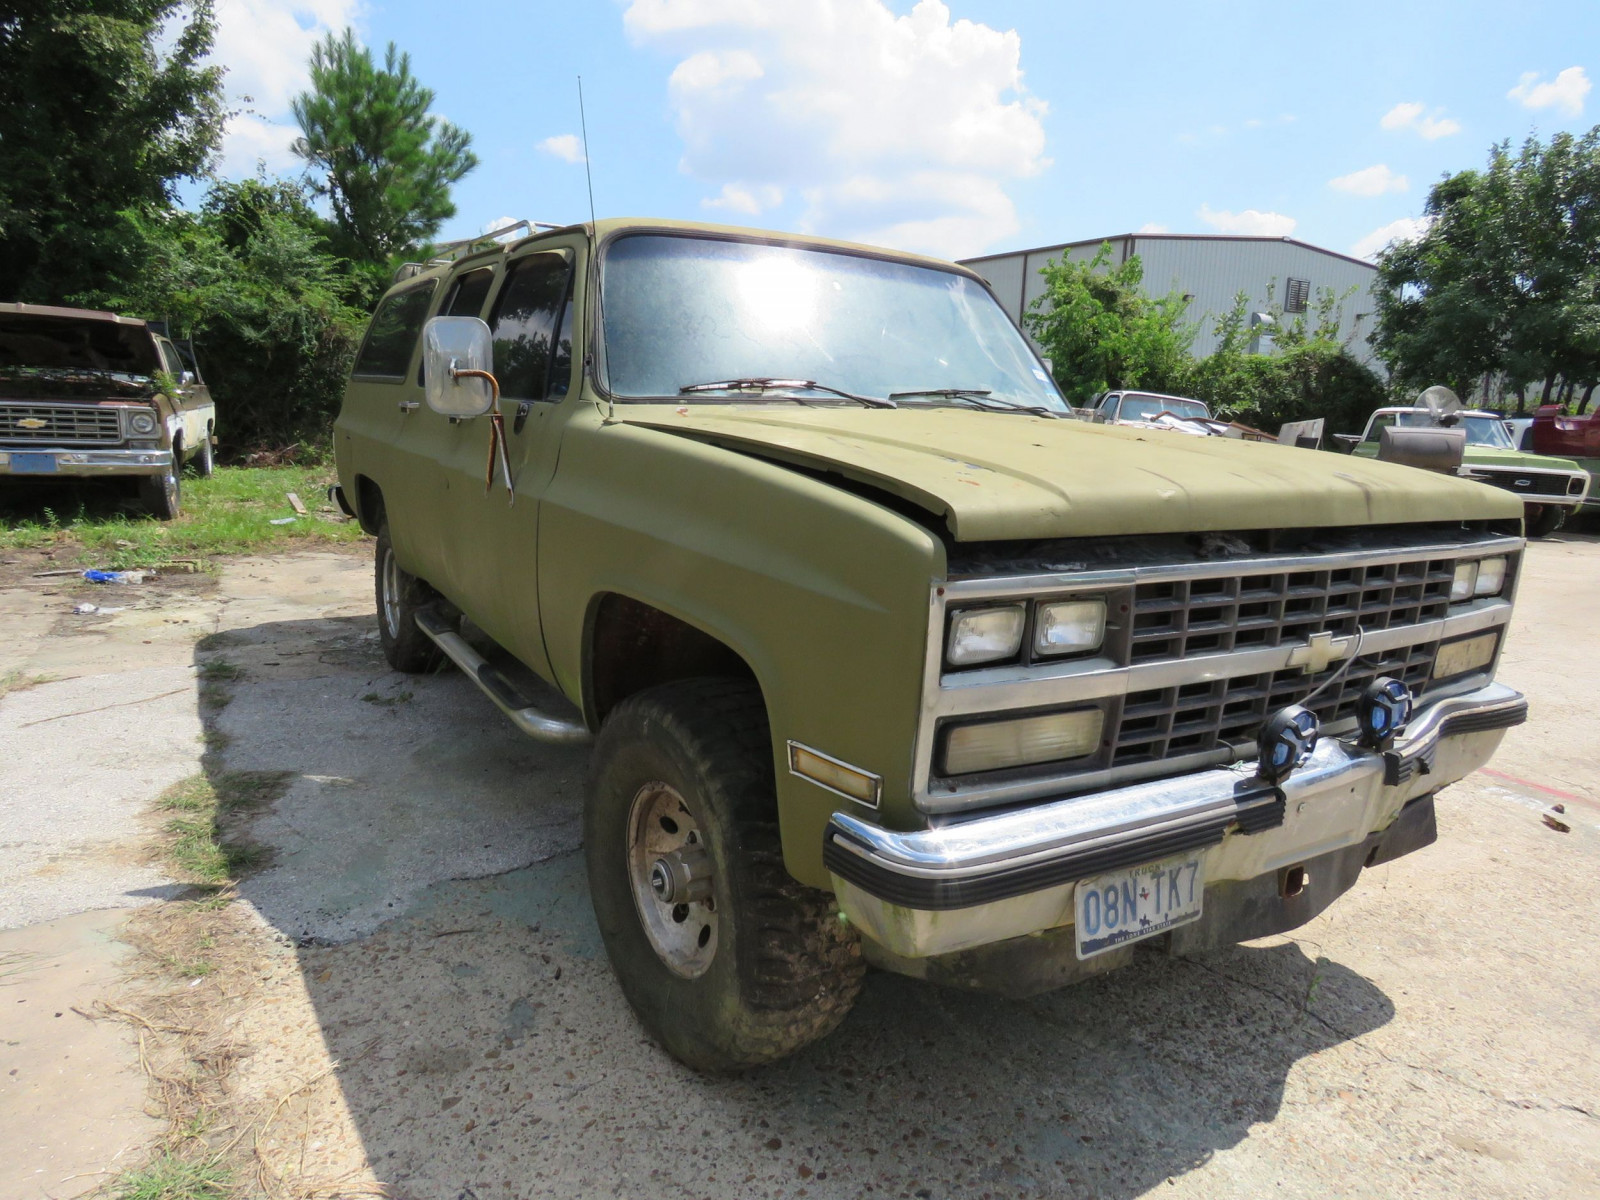 1990 Chevrolet Suburban 4x4 Project - Image 3